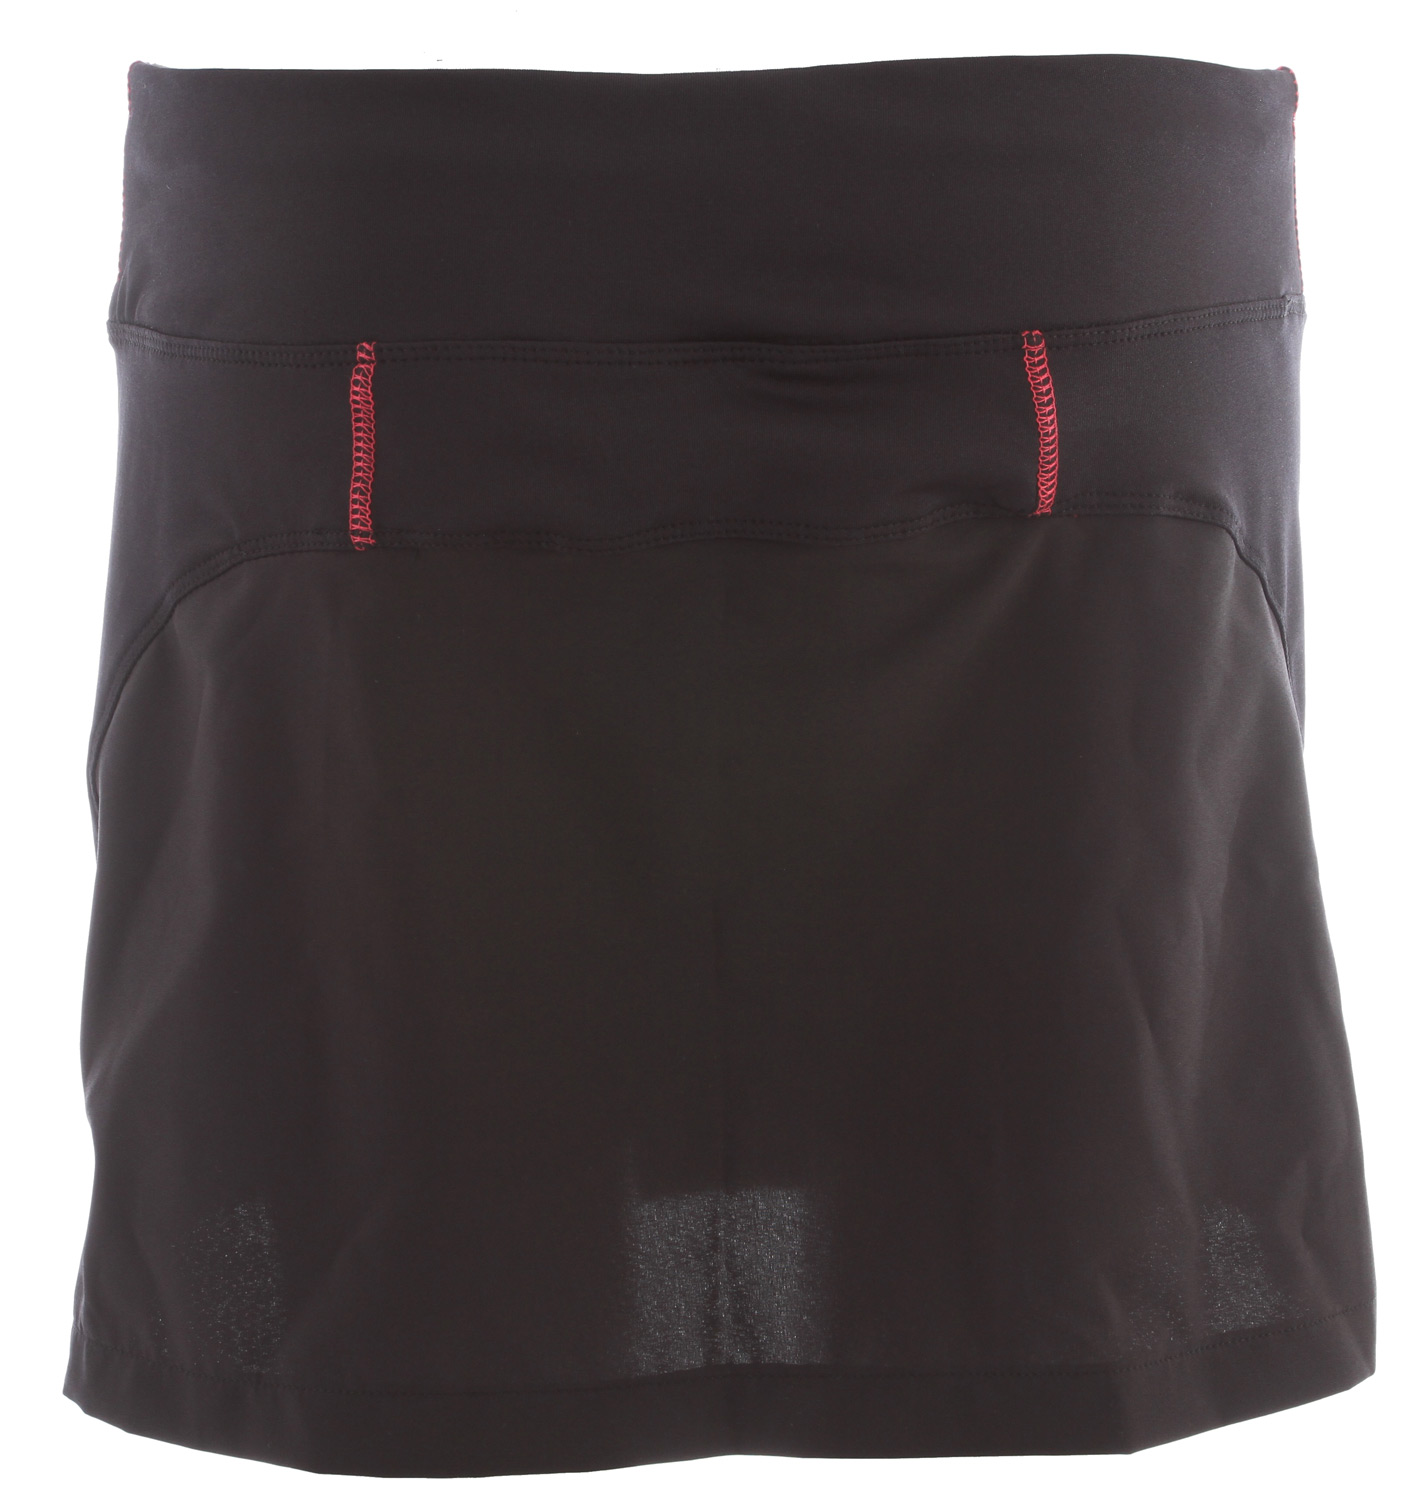 Outdoor skirt for womenKey Features of the 2117 Of Sweden Lysekil Skirt: Skirt with underpants 4-way stretch - $14.95